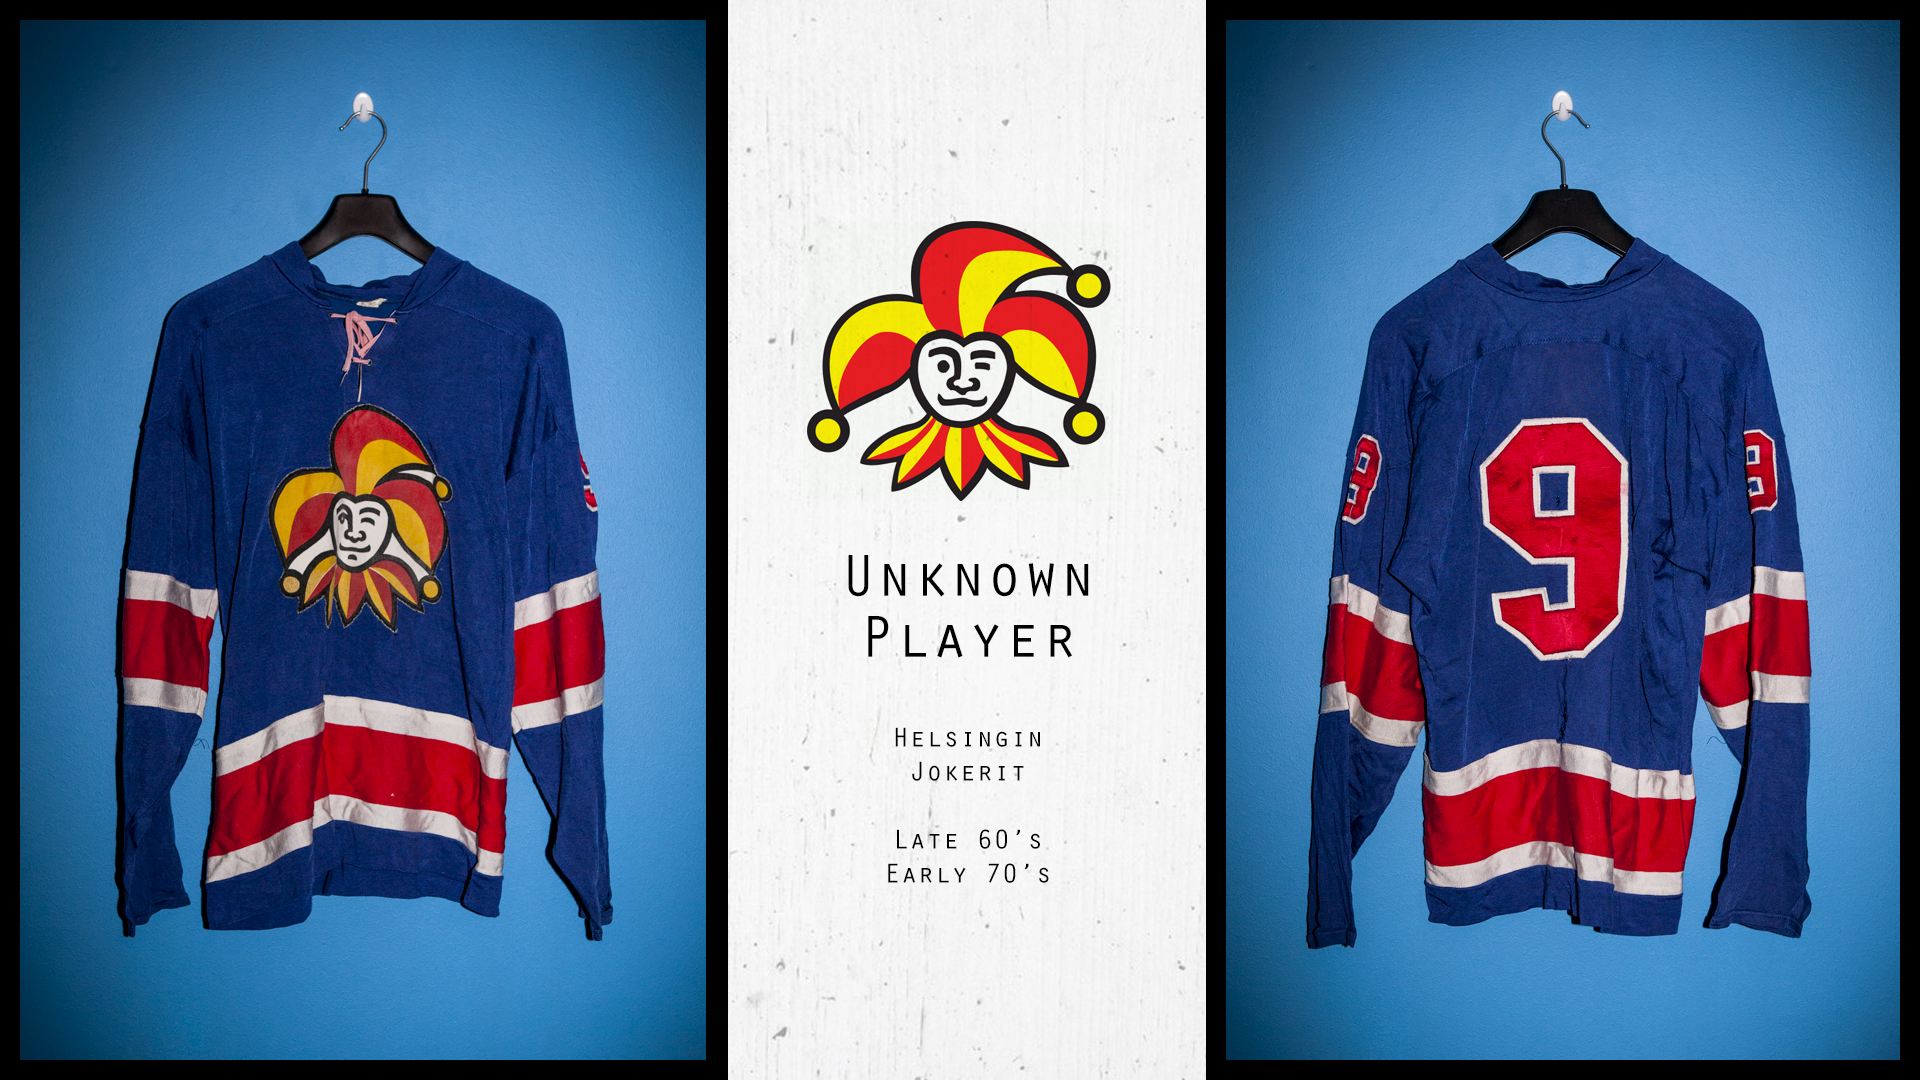 Jokerit game worn jersey from late 60 s (Possibly Timo Turunen 68-69 ... a64f1a210d0